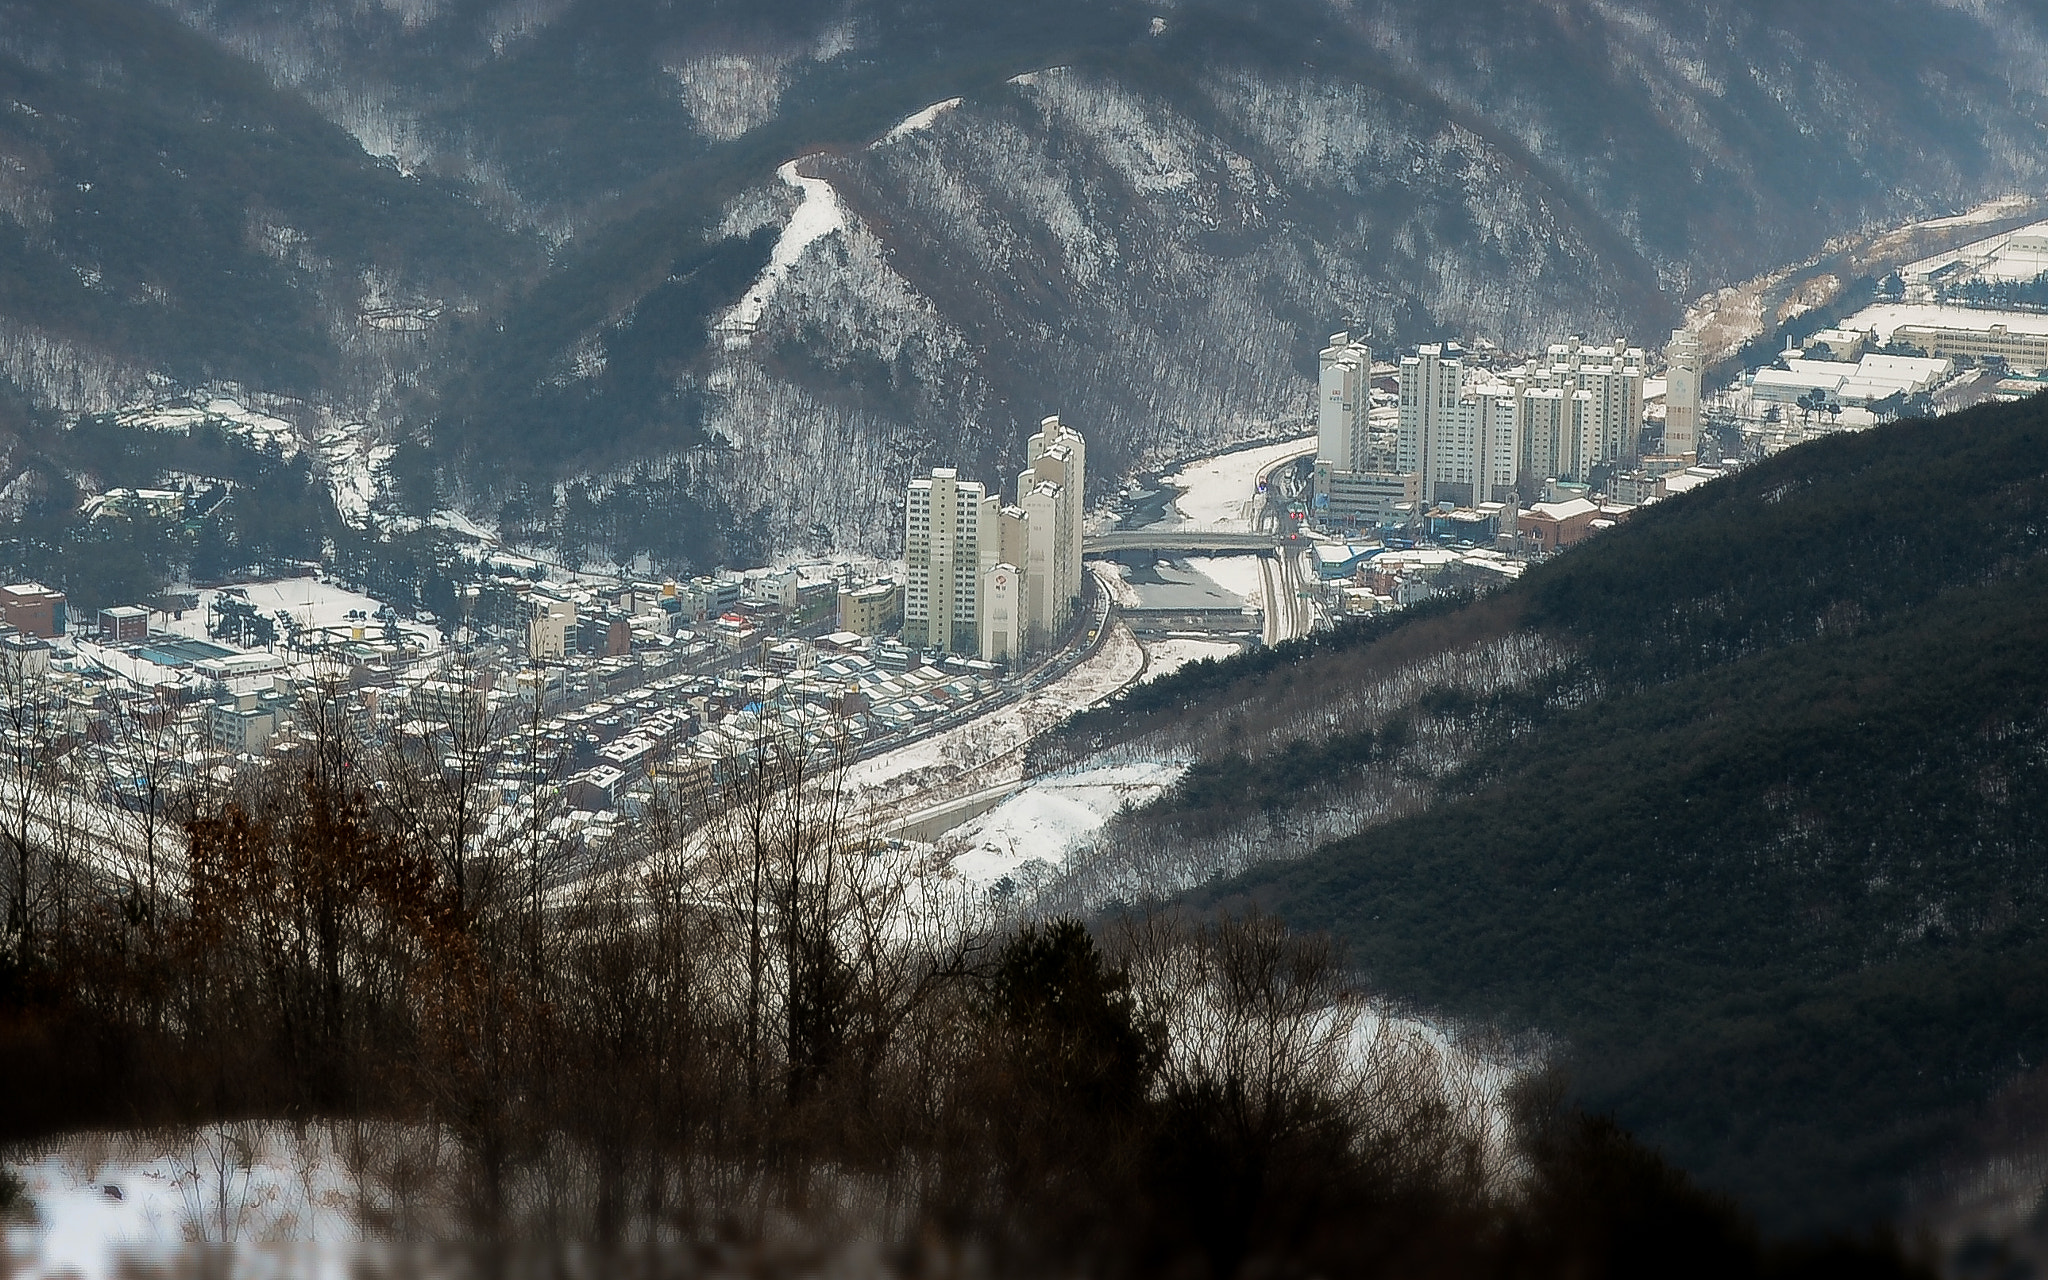 Photograph Tiny Daegu by Brad Tombers on 500px